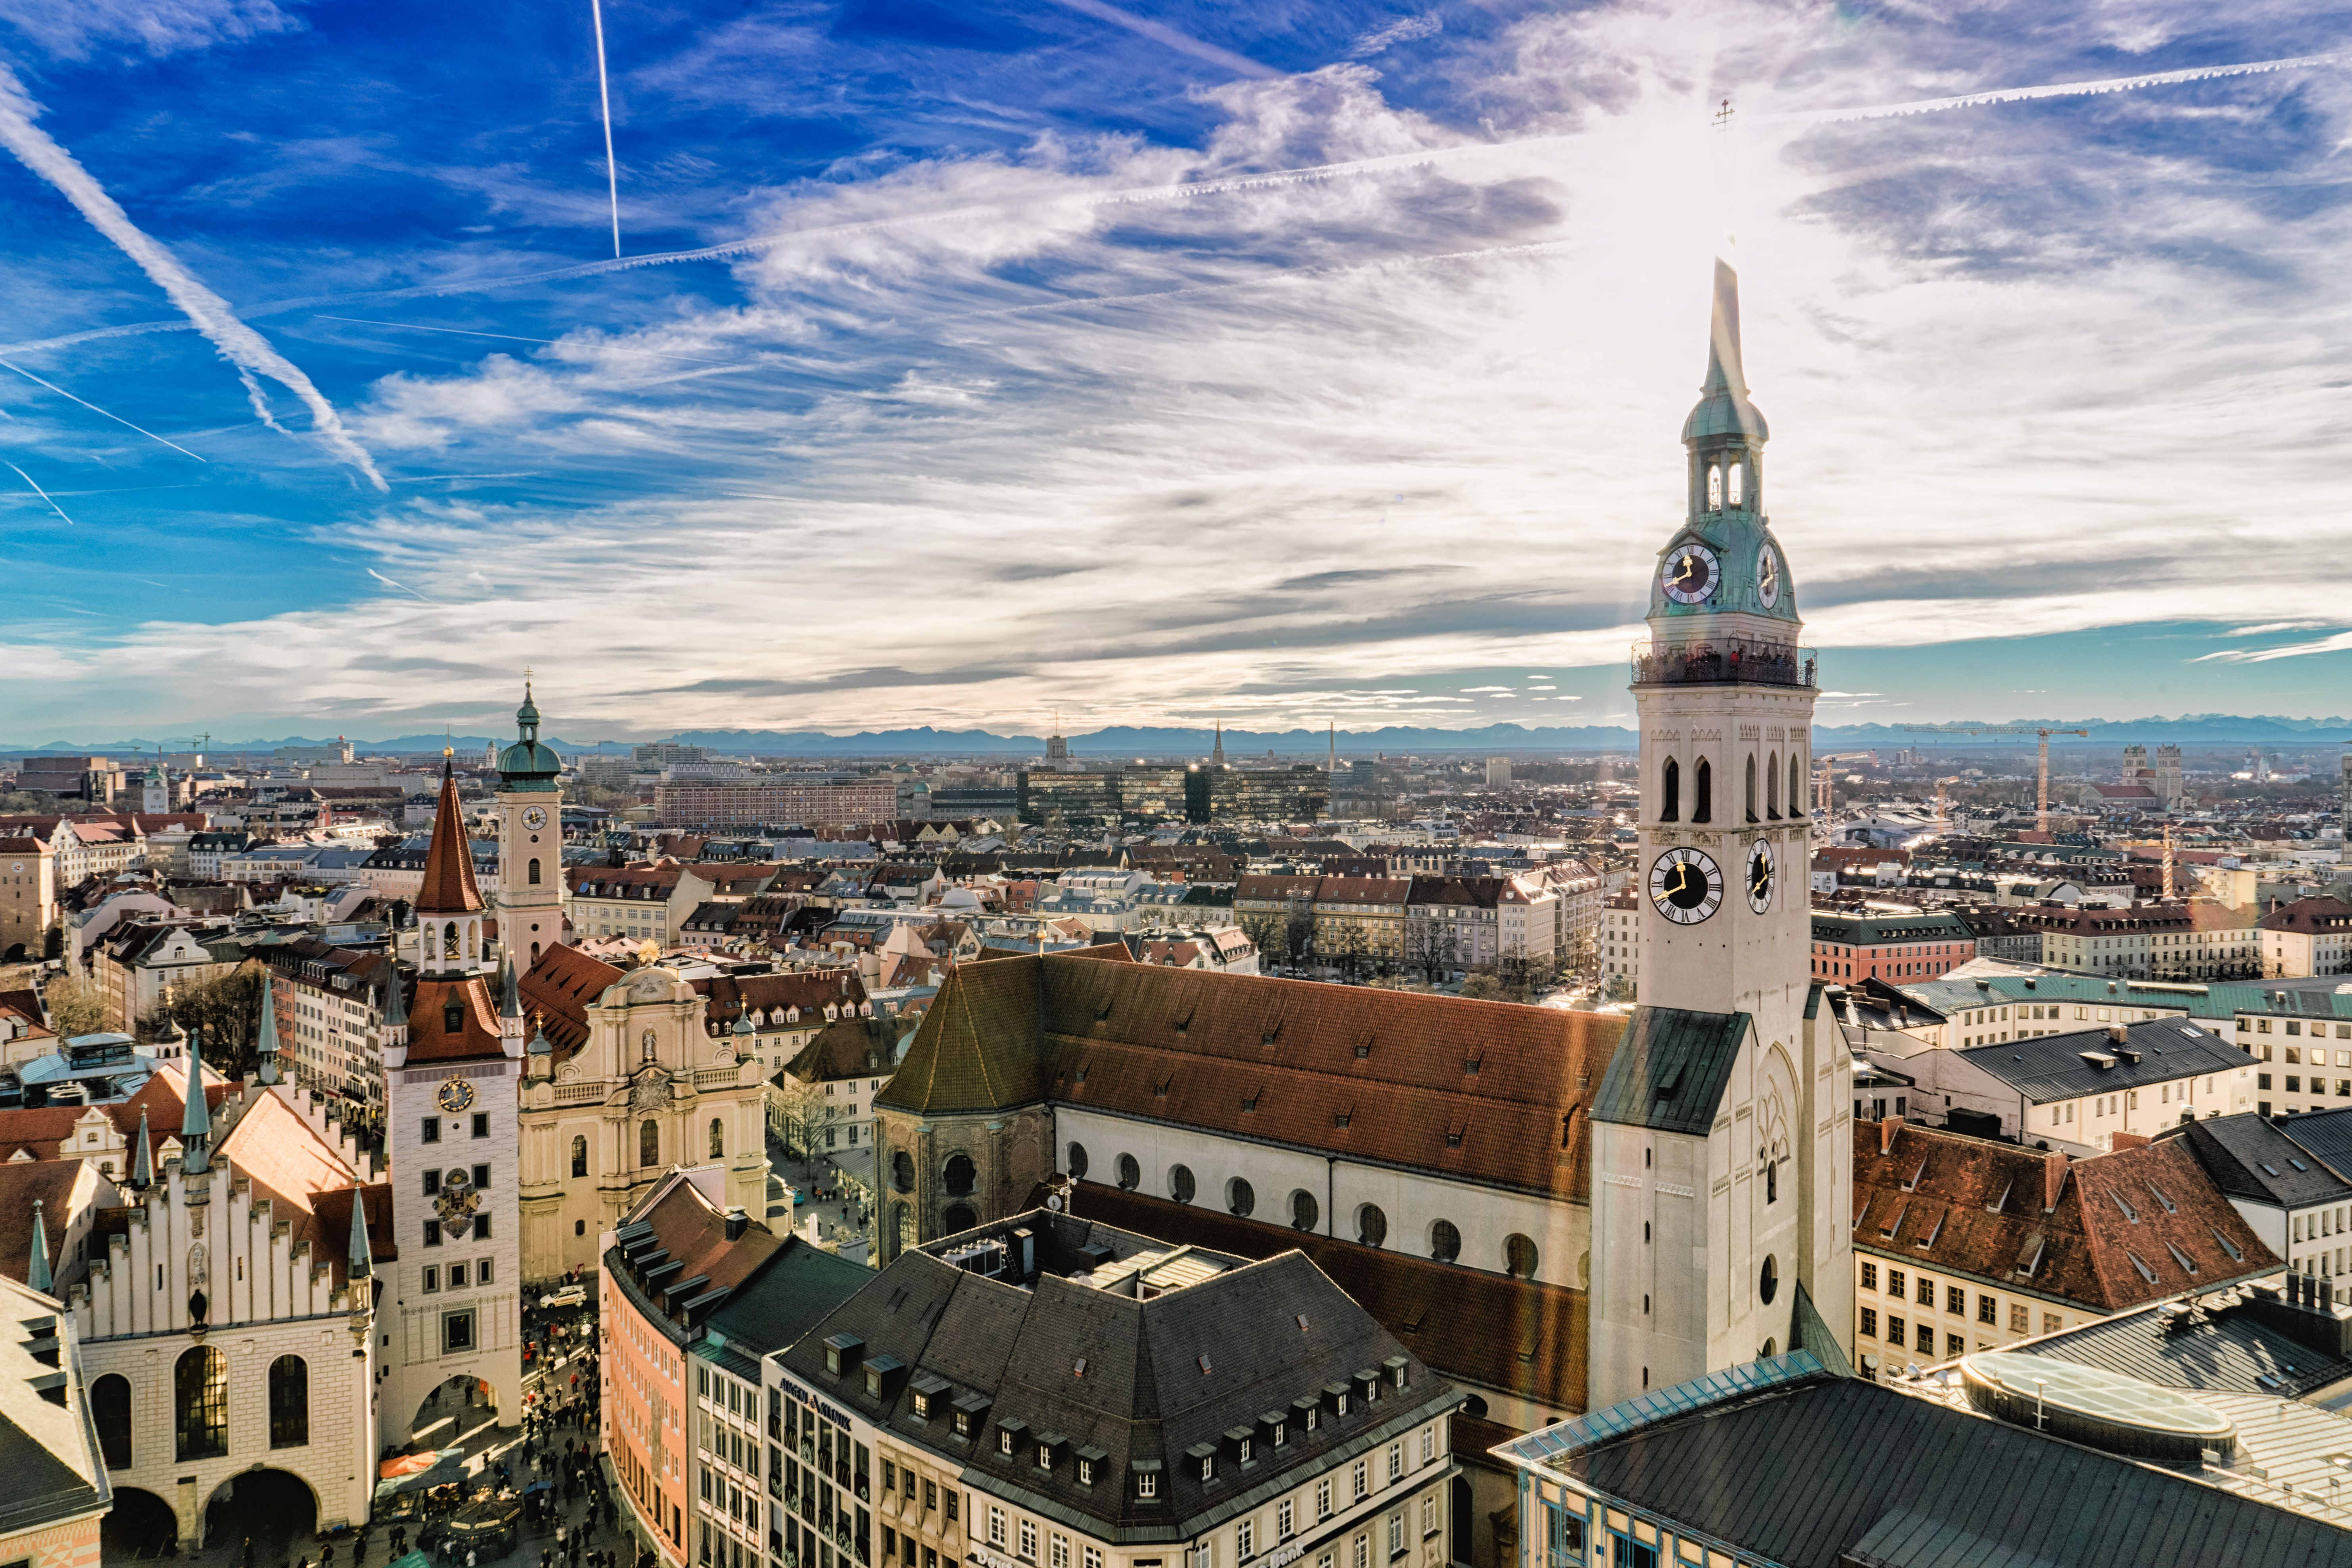 Things to Do in Munich & Bavaria